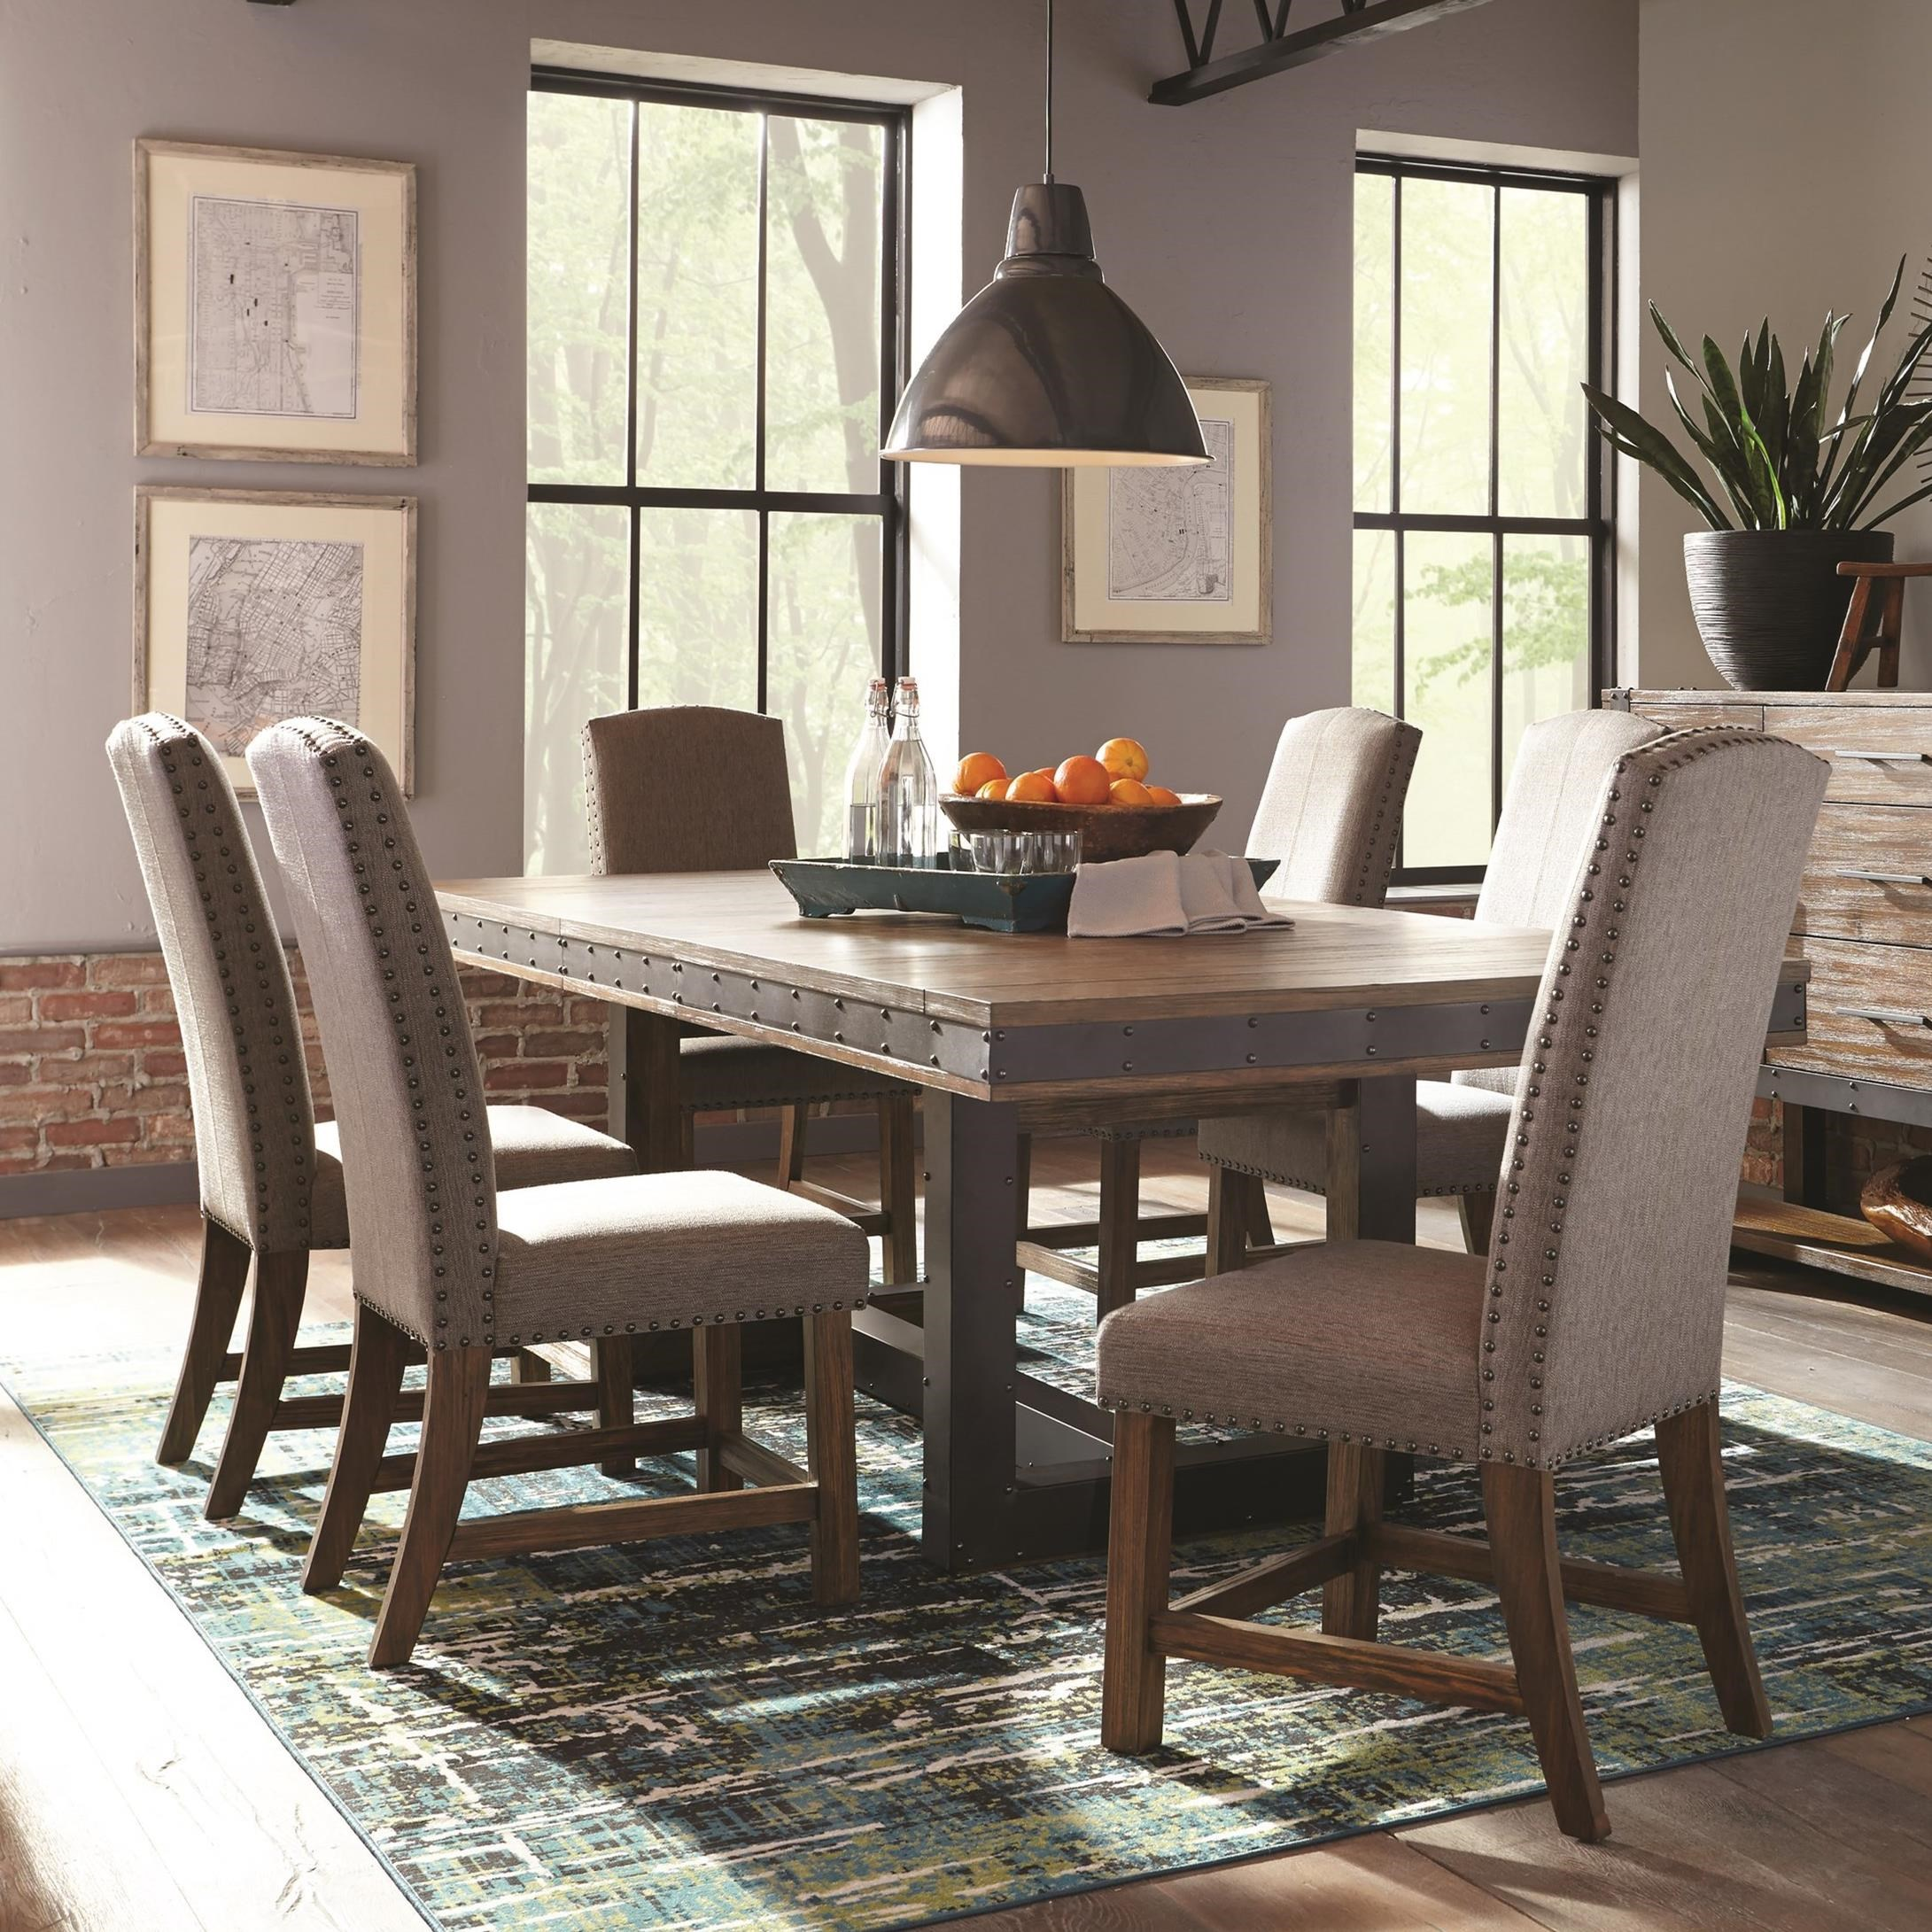 Dining And Living Room Furniture: Scott Living Atwater Industrial Distressed Table And Chair